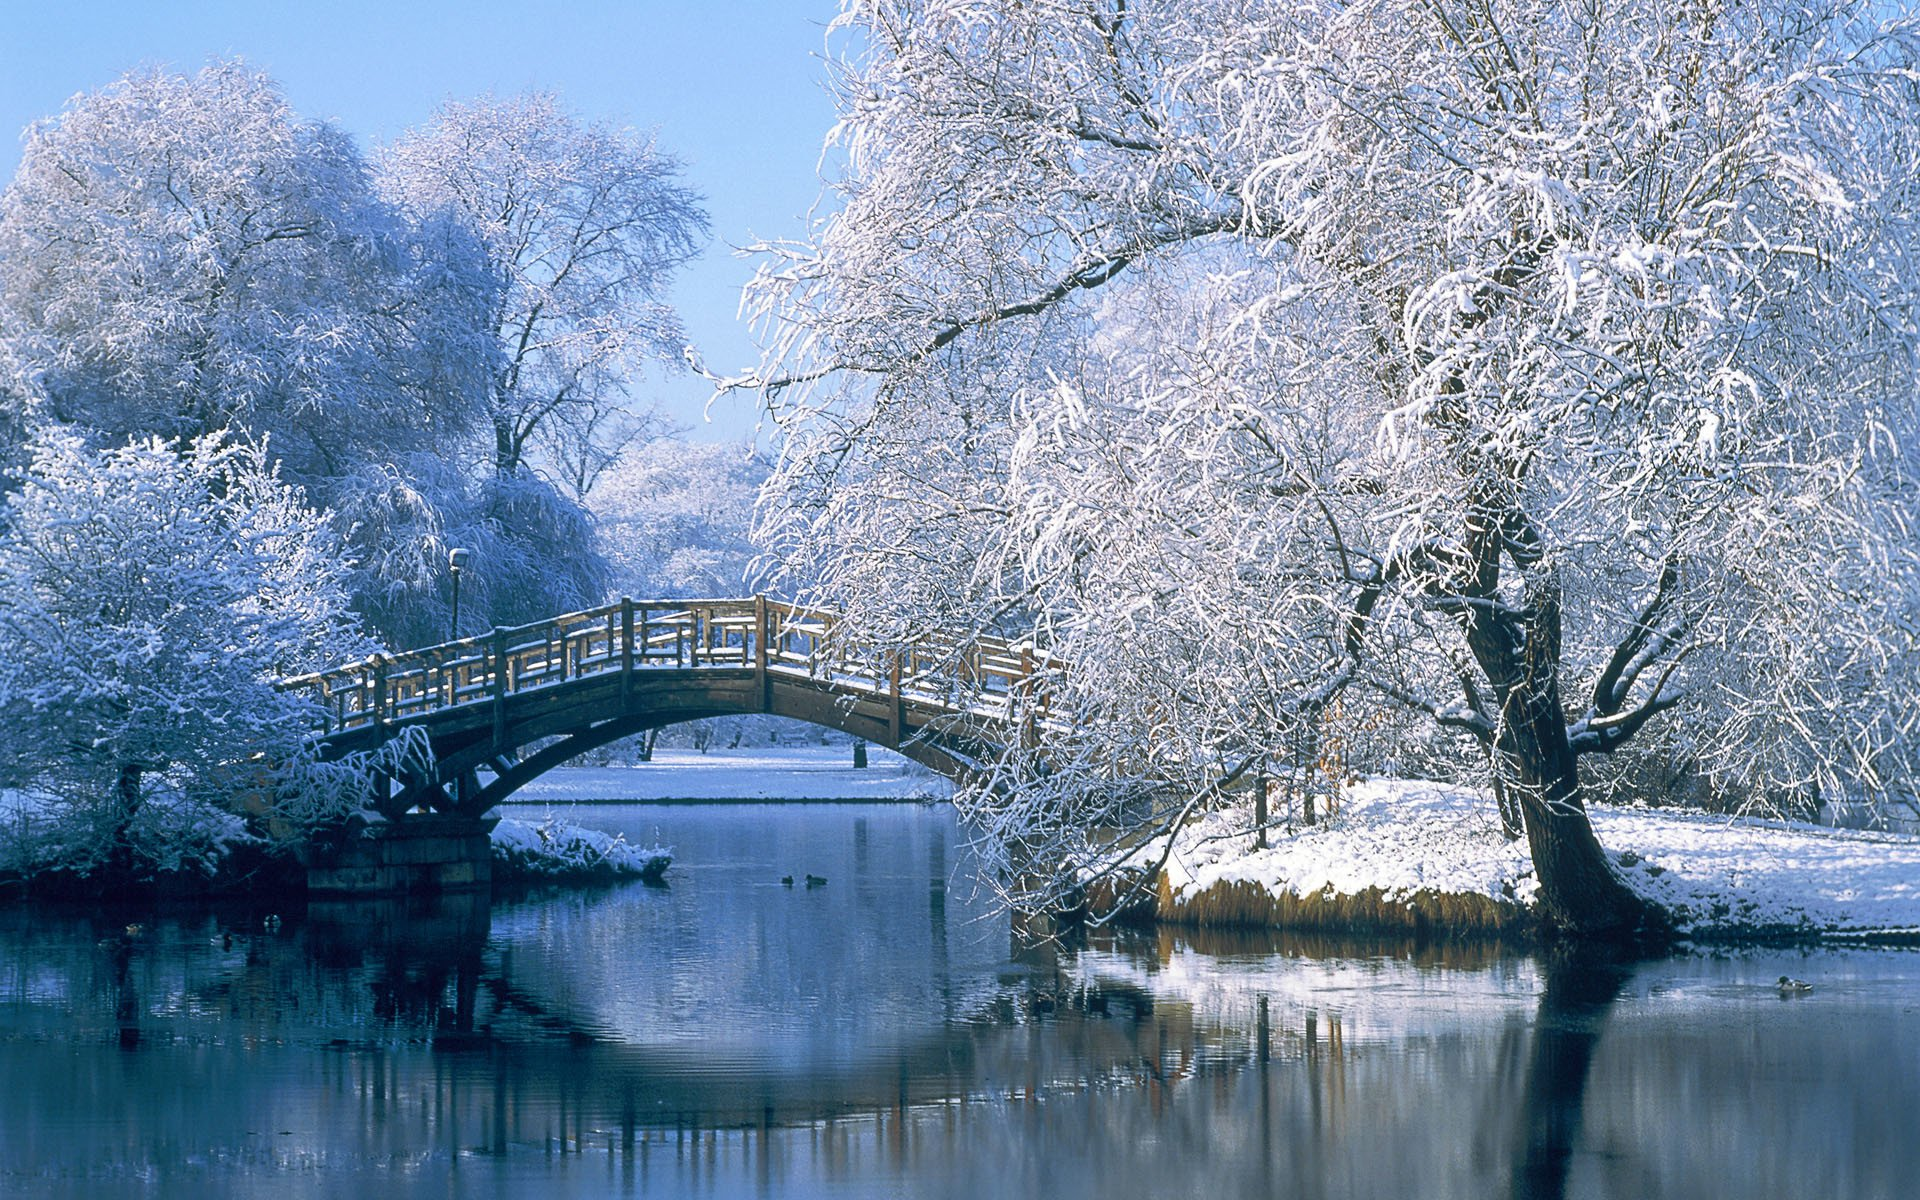 Winter Pictures for Desktop Background 69 images 1920x1200